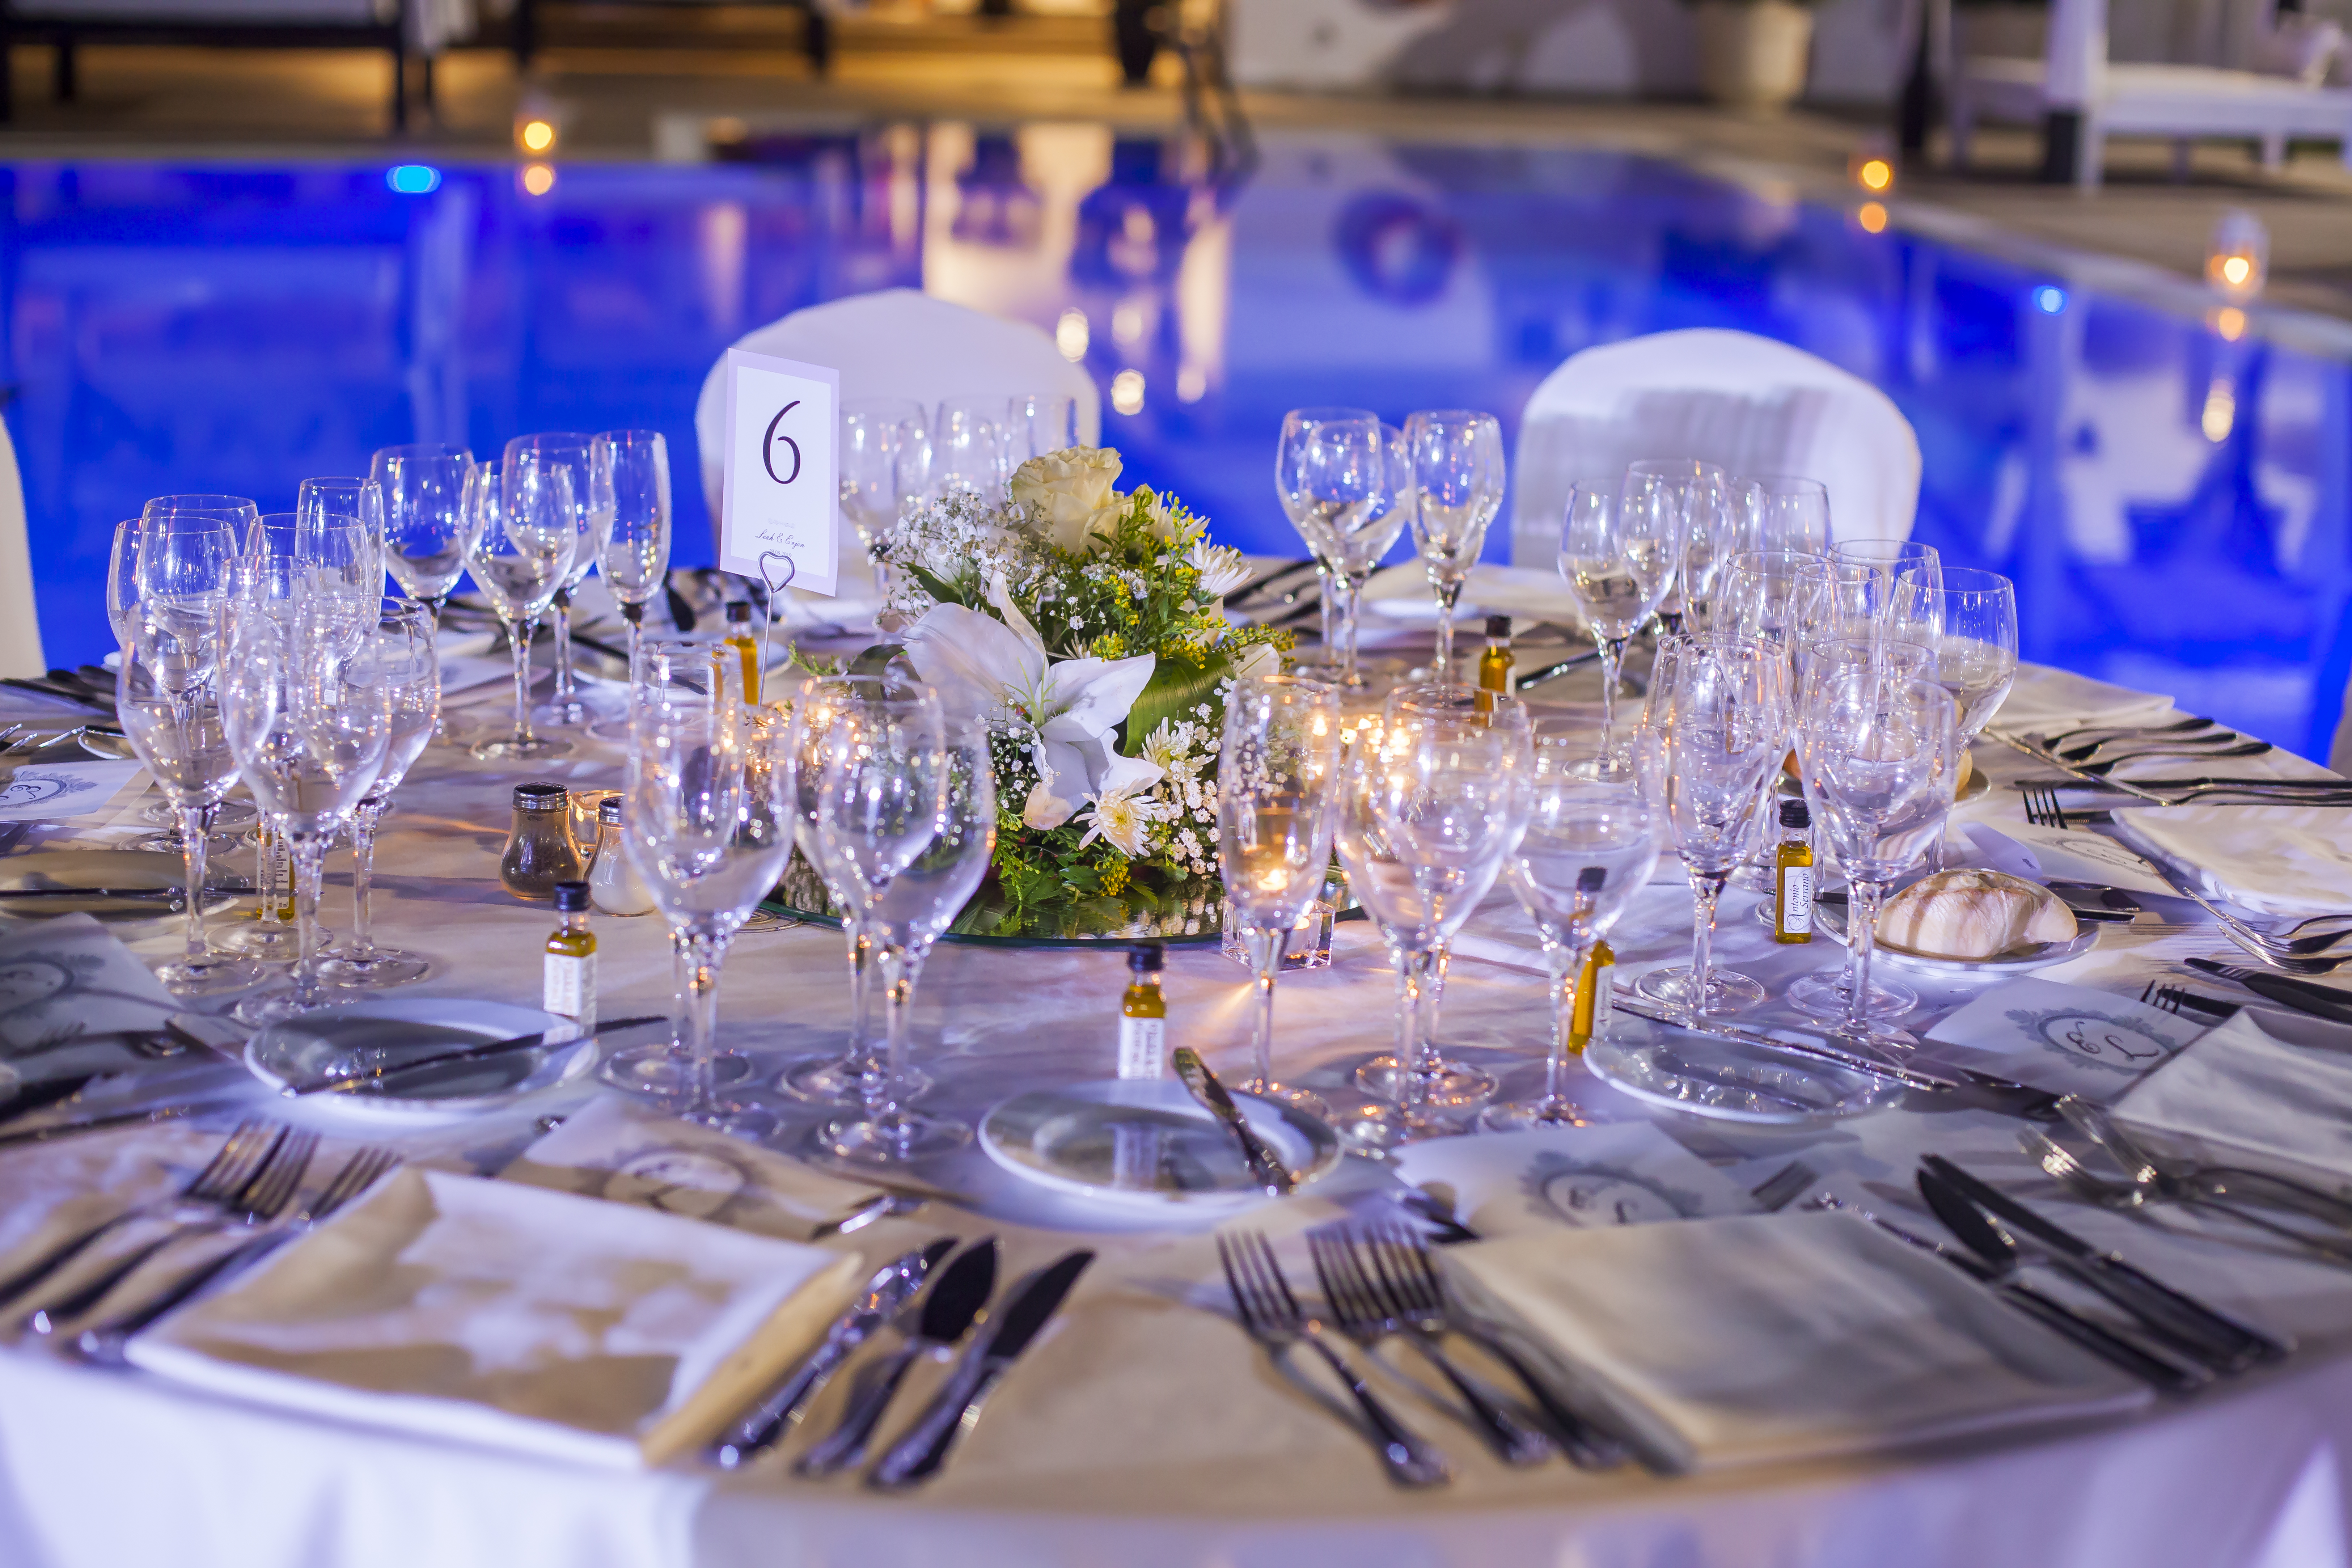 Stunning wedding table decor set against the backdrop of the fabulous beach club's pool